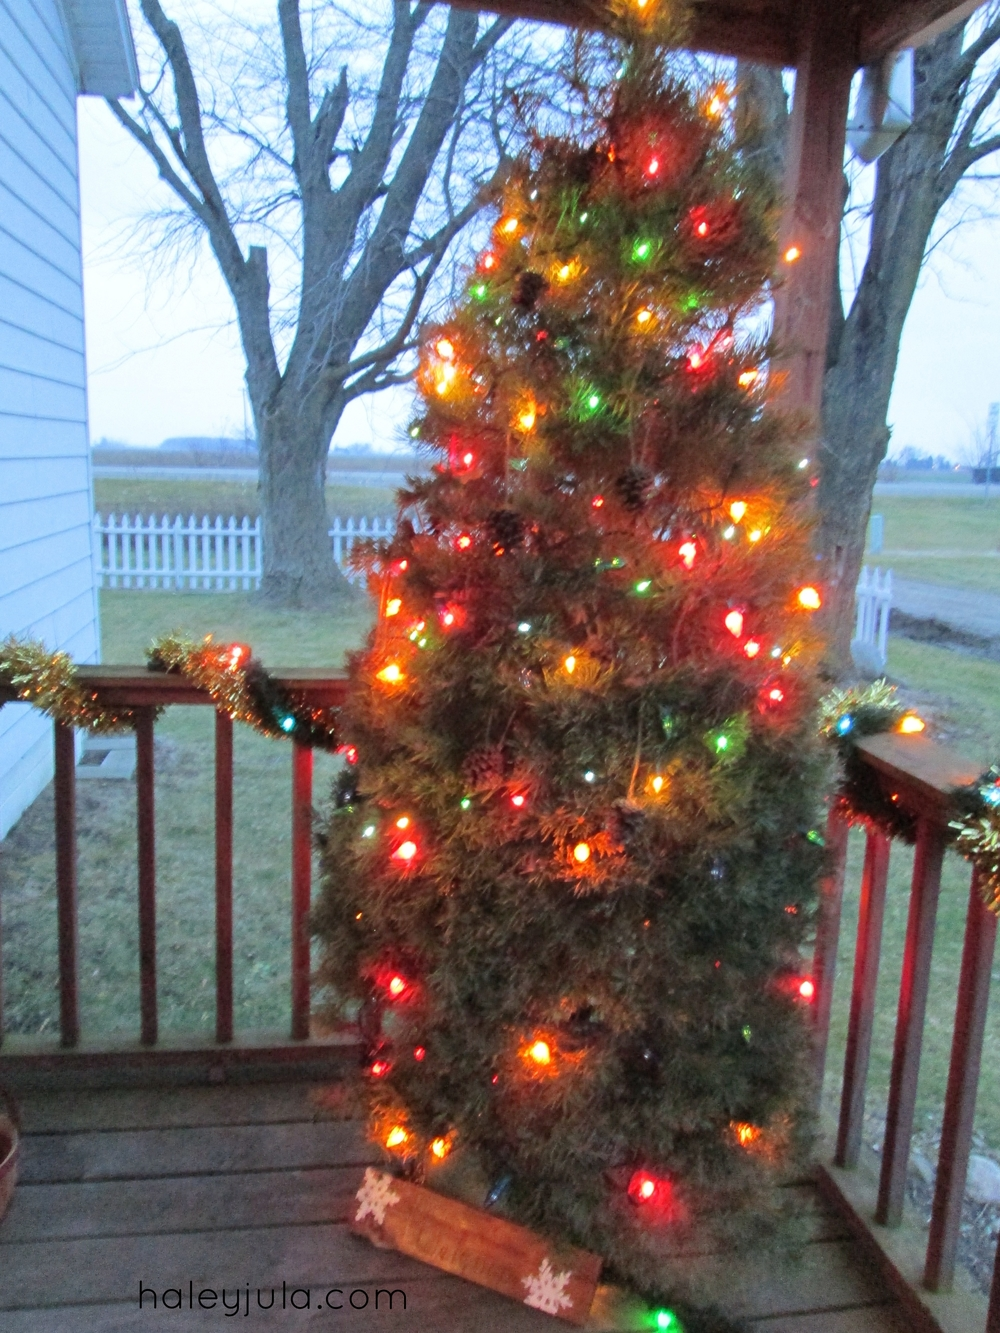 Color lights on our porch tree this year :)